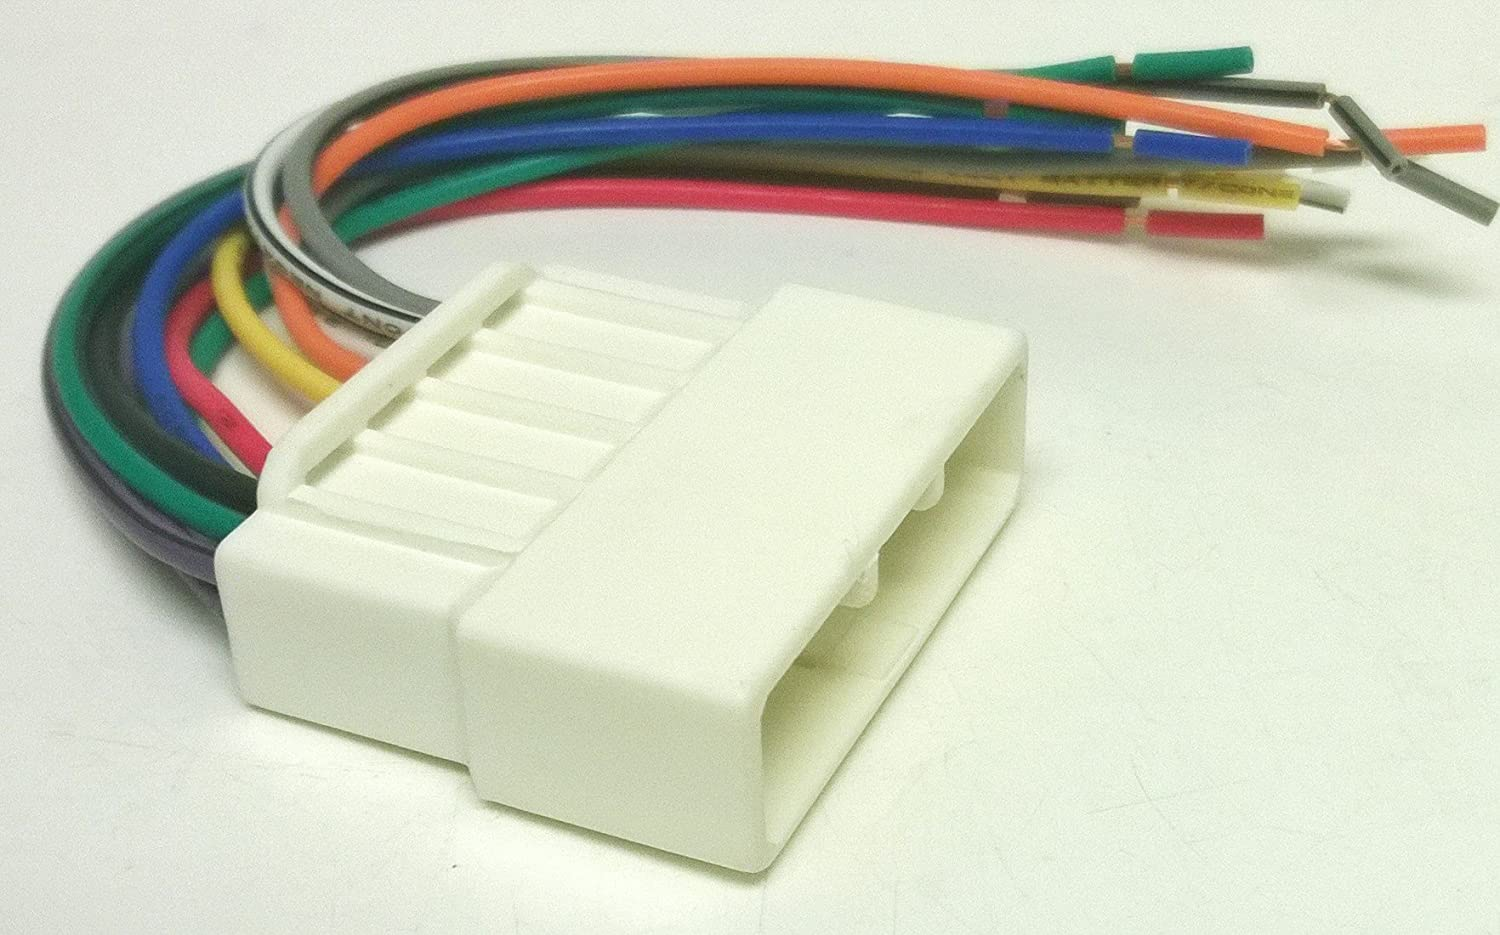 Amazon.com: Wire Harness for Installing a New Radio into a Honda, Civic,  1986, 1987, 1988, 1989, 1990, 1991, 1992, 1993, 1994, 1995, 1996, 1997,  1998, 1999, 2000: Car Electronics